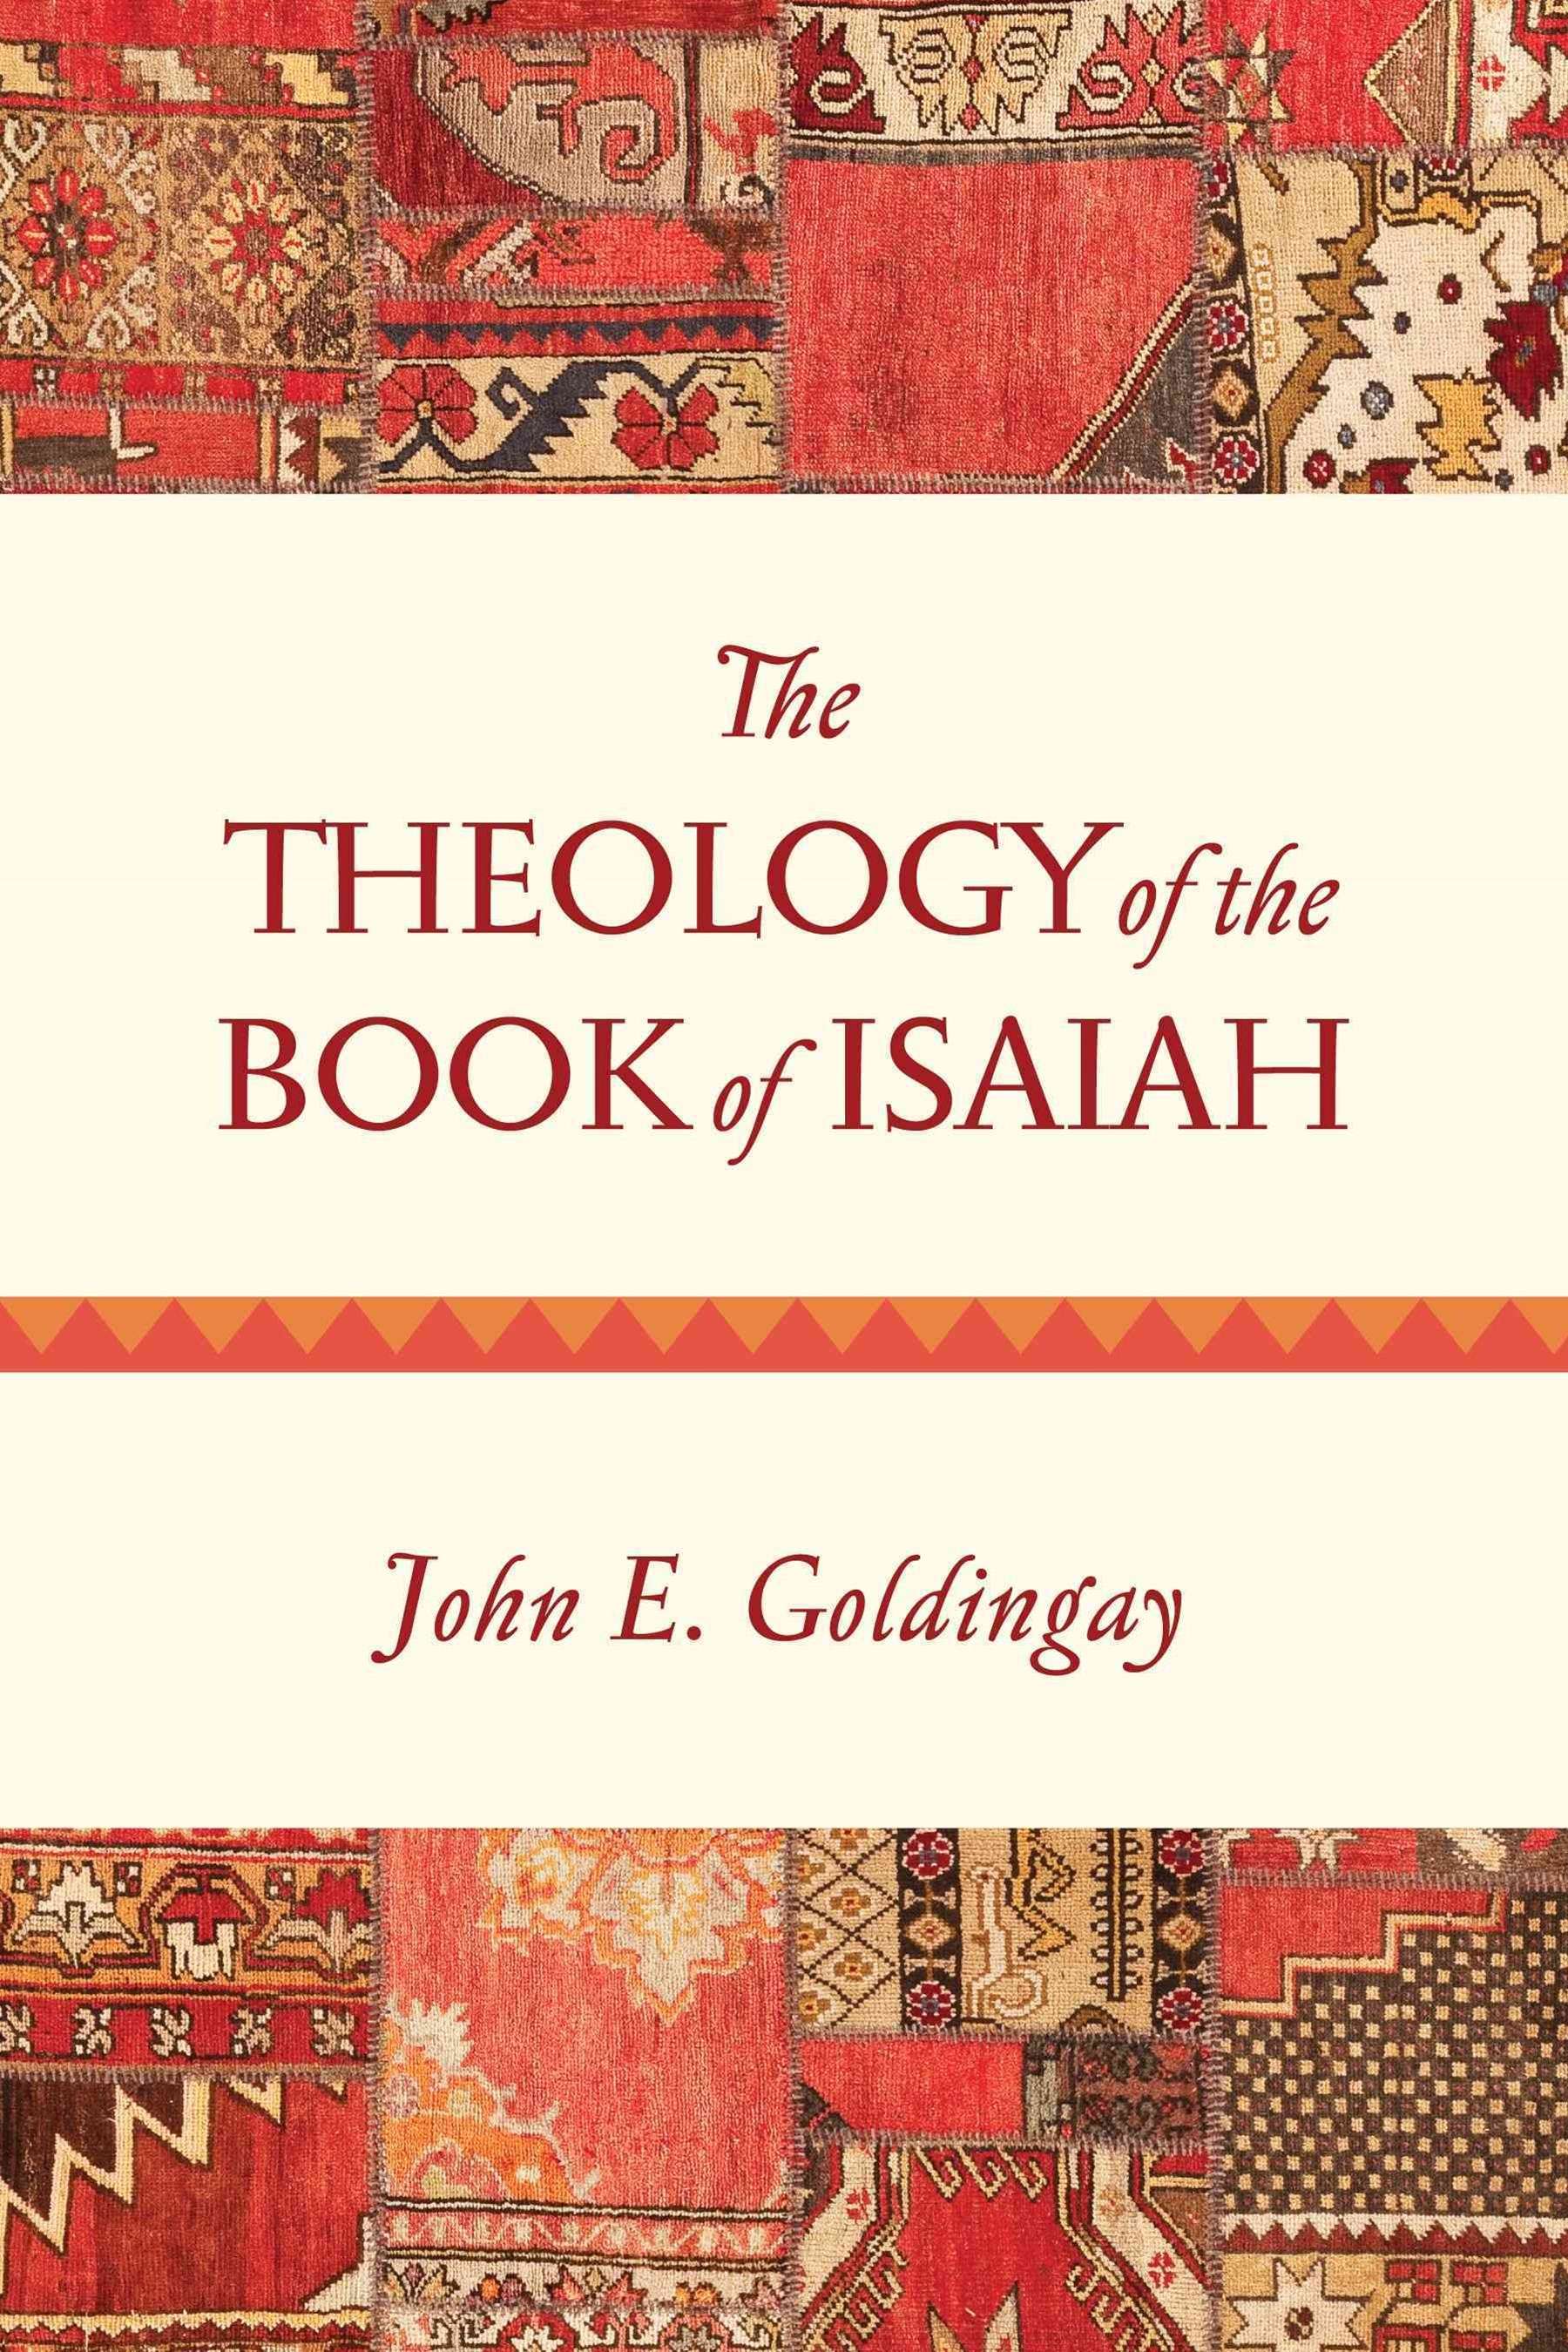 Theology of the Book of Isaiah